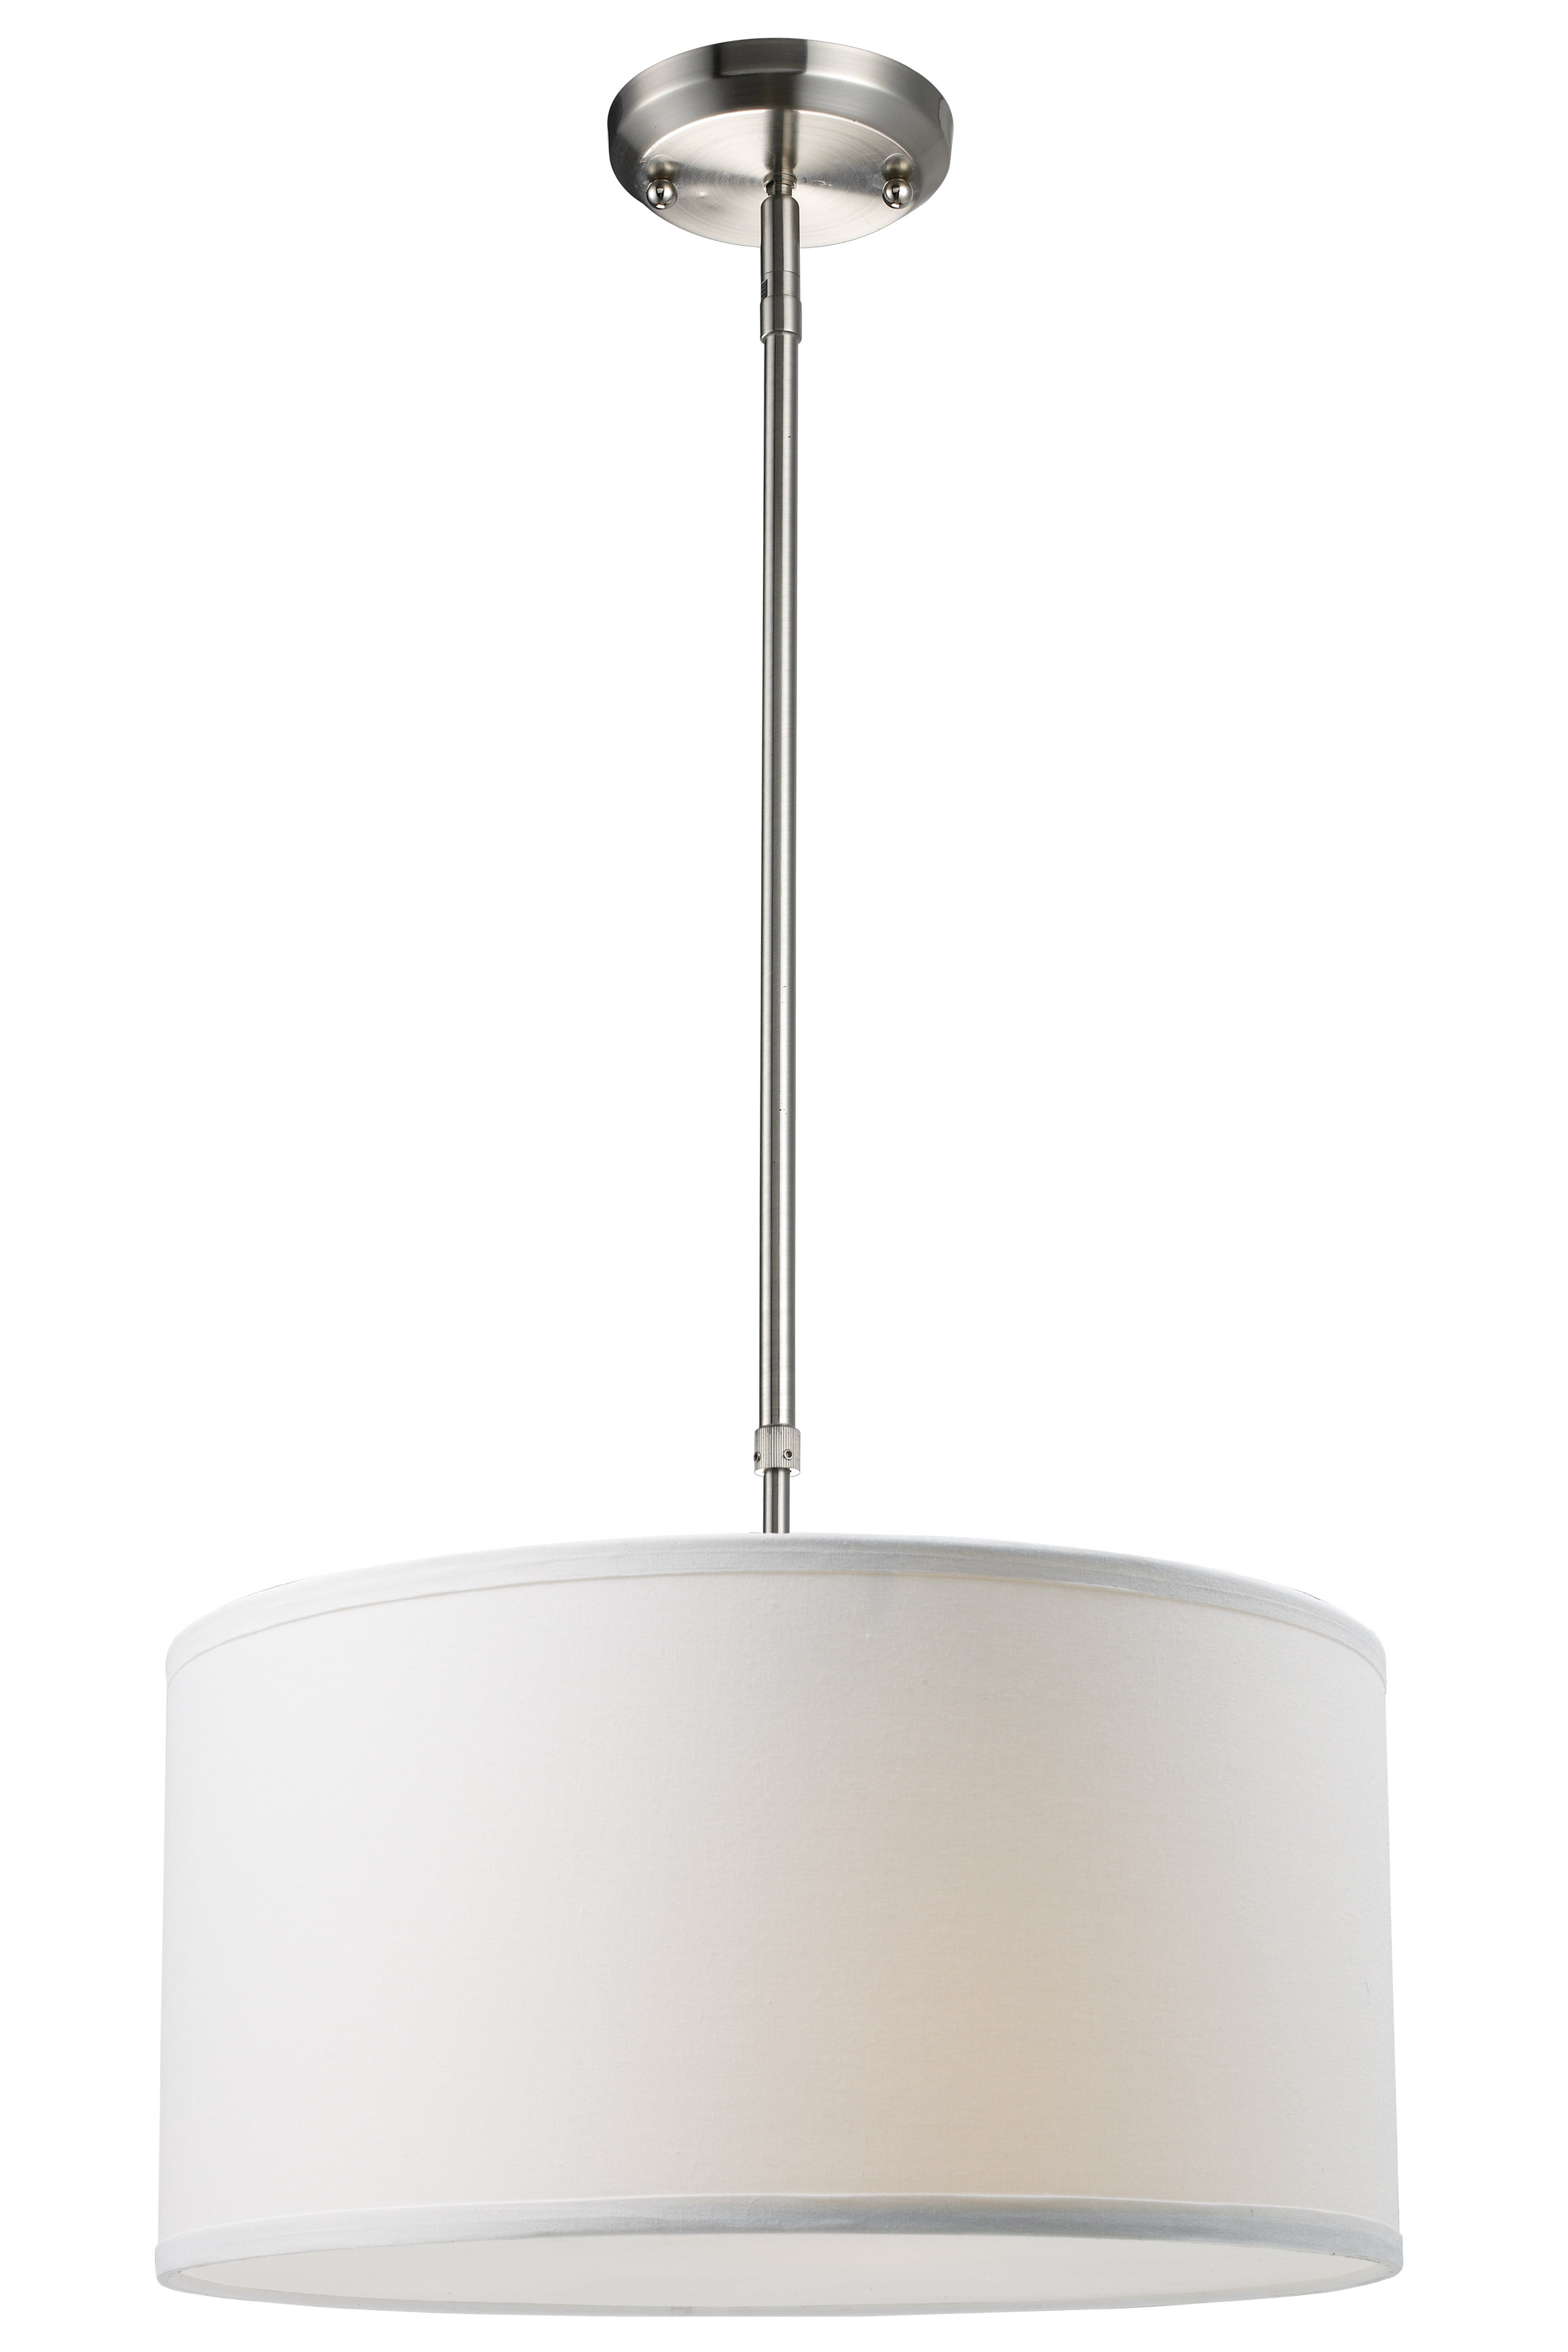 Kasey 3 Light Single Drum Pendant Pertaining To Friedland 3 Light Drum Tiered Pendants (View 7 of 30)